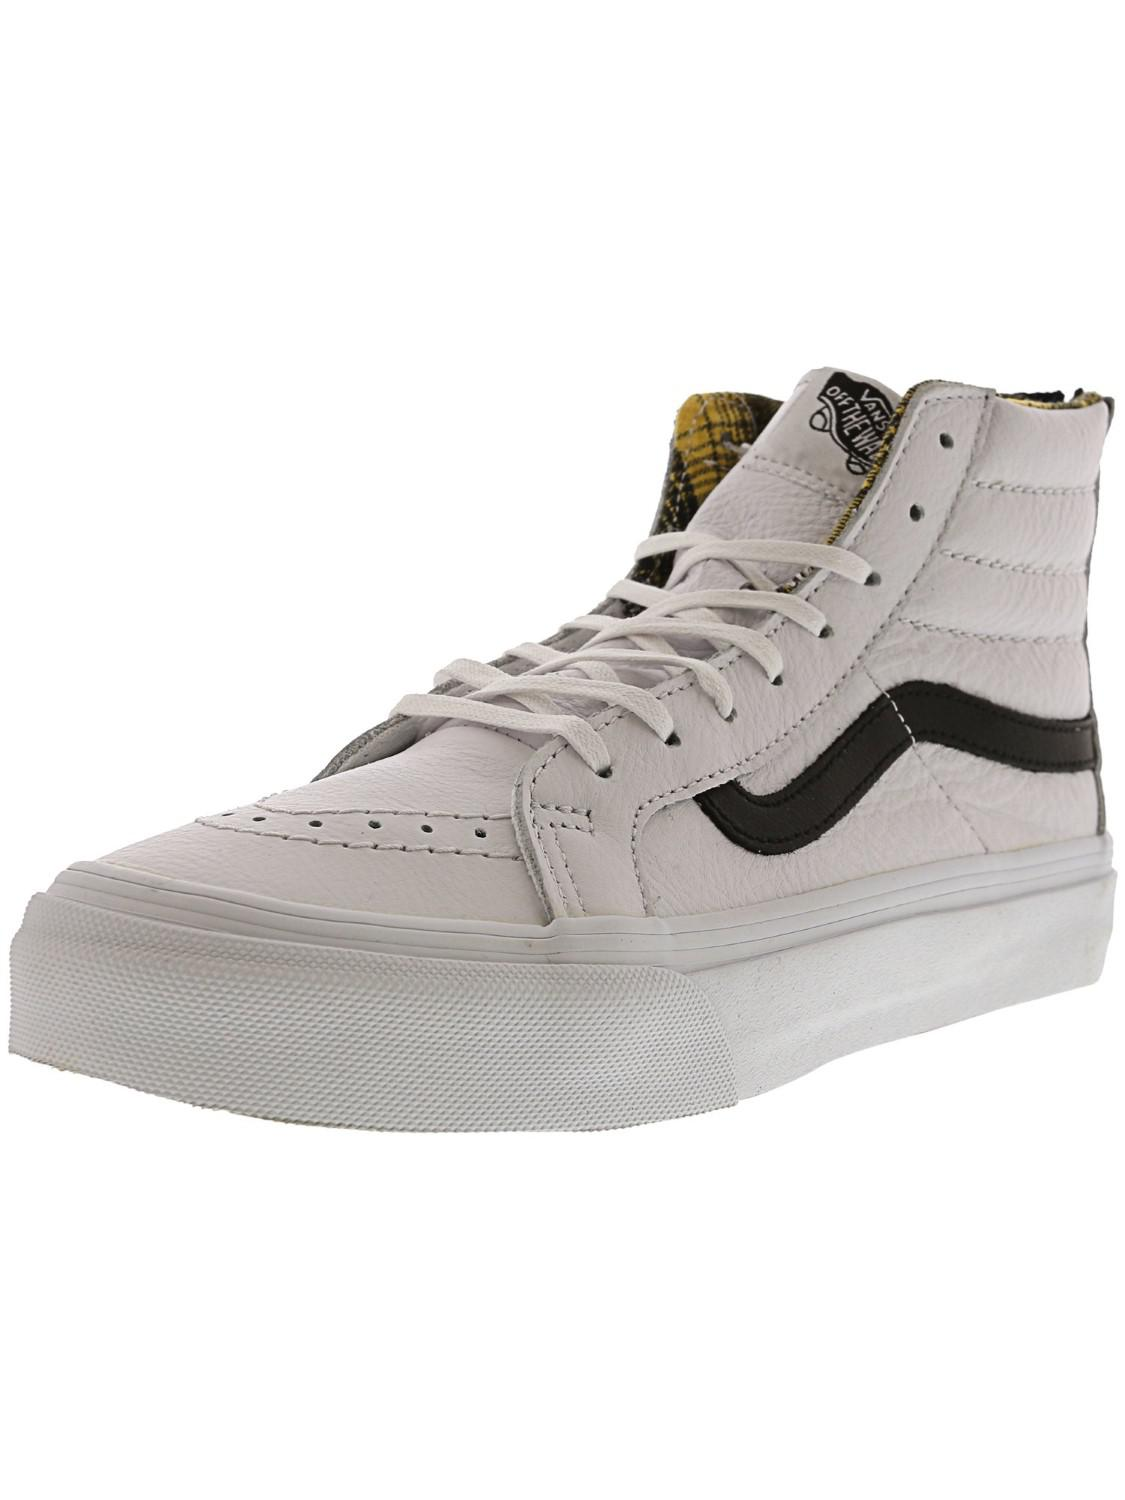 5f0f47ddc5 Lyst - Vans Sk8 Hi Slim Zip Shoes in White for Men